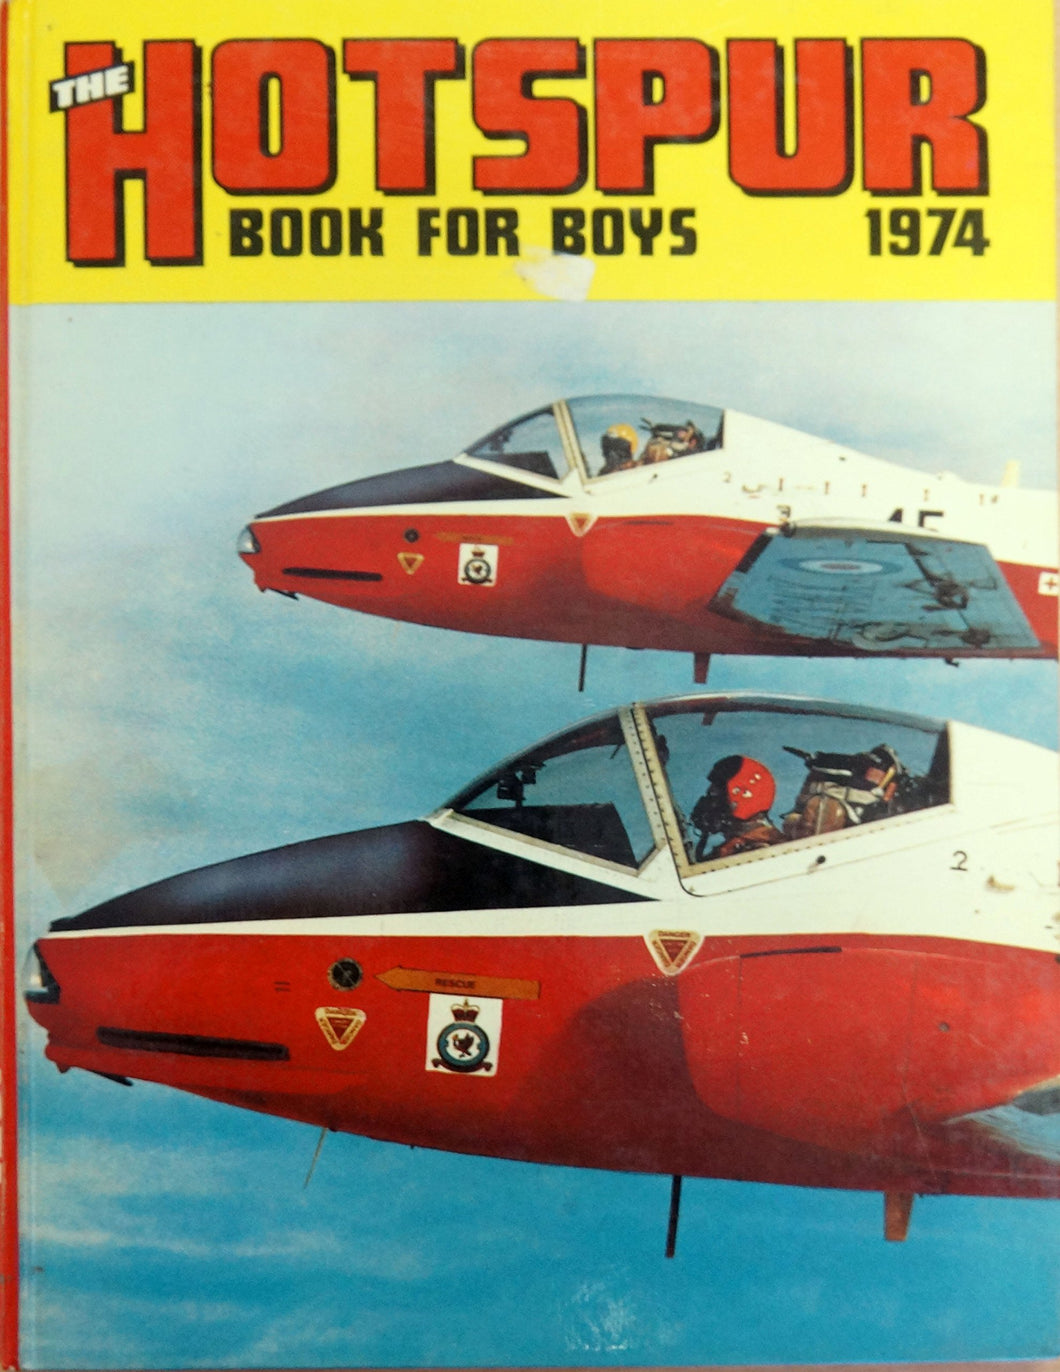 HOTSPUR BOOK FOR BOYS 1974 ( ANNUAL ) [Hardcover] various